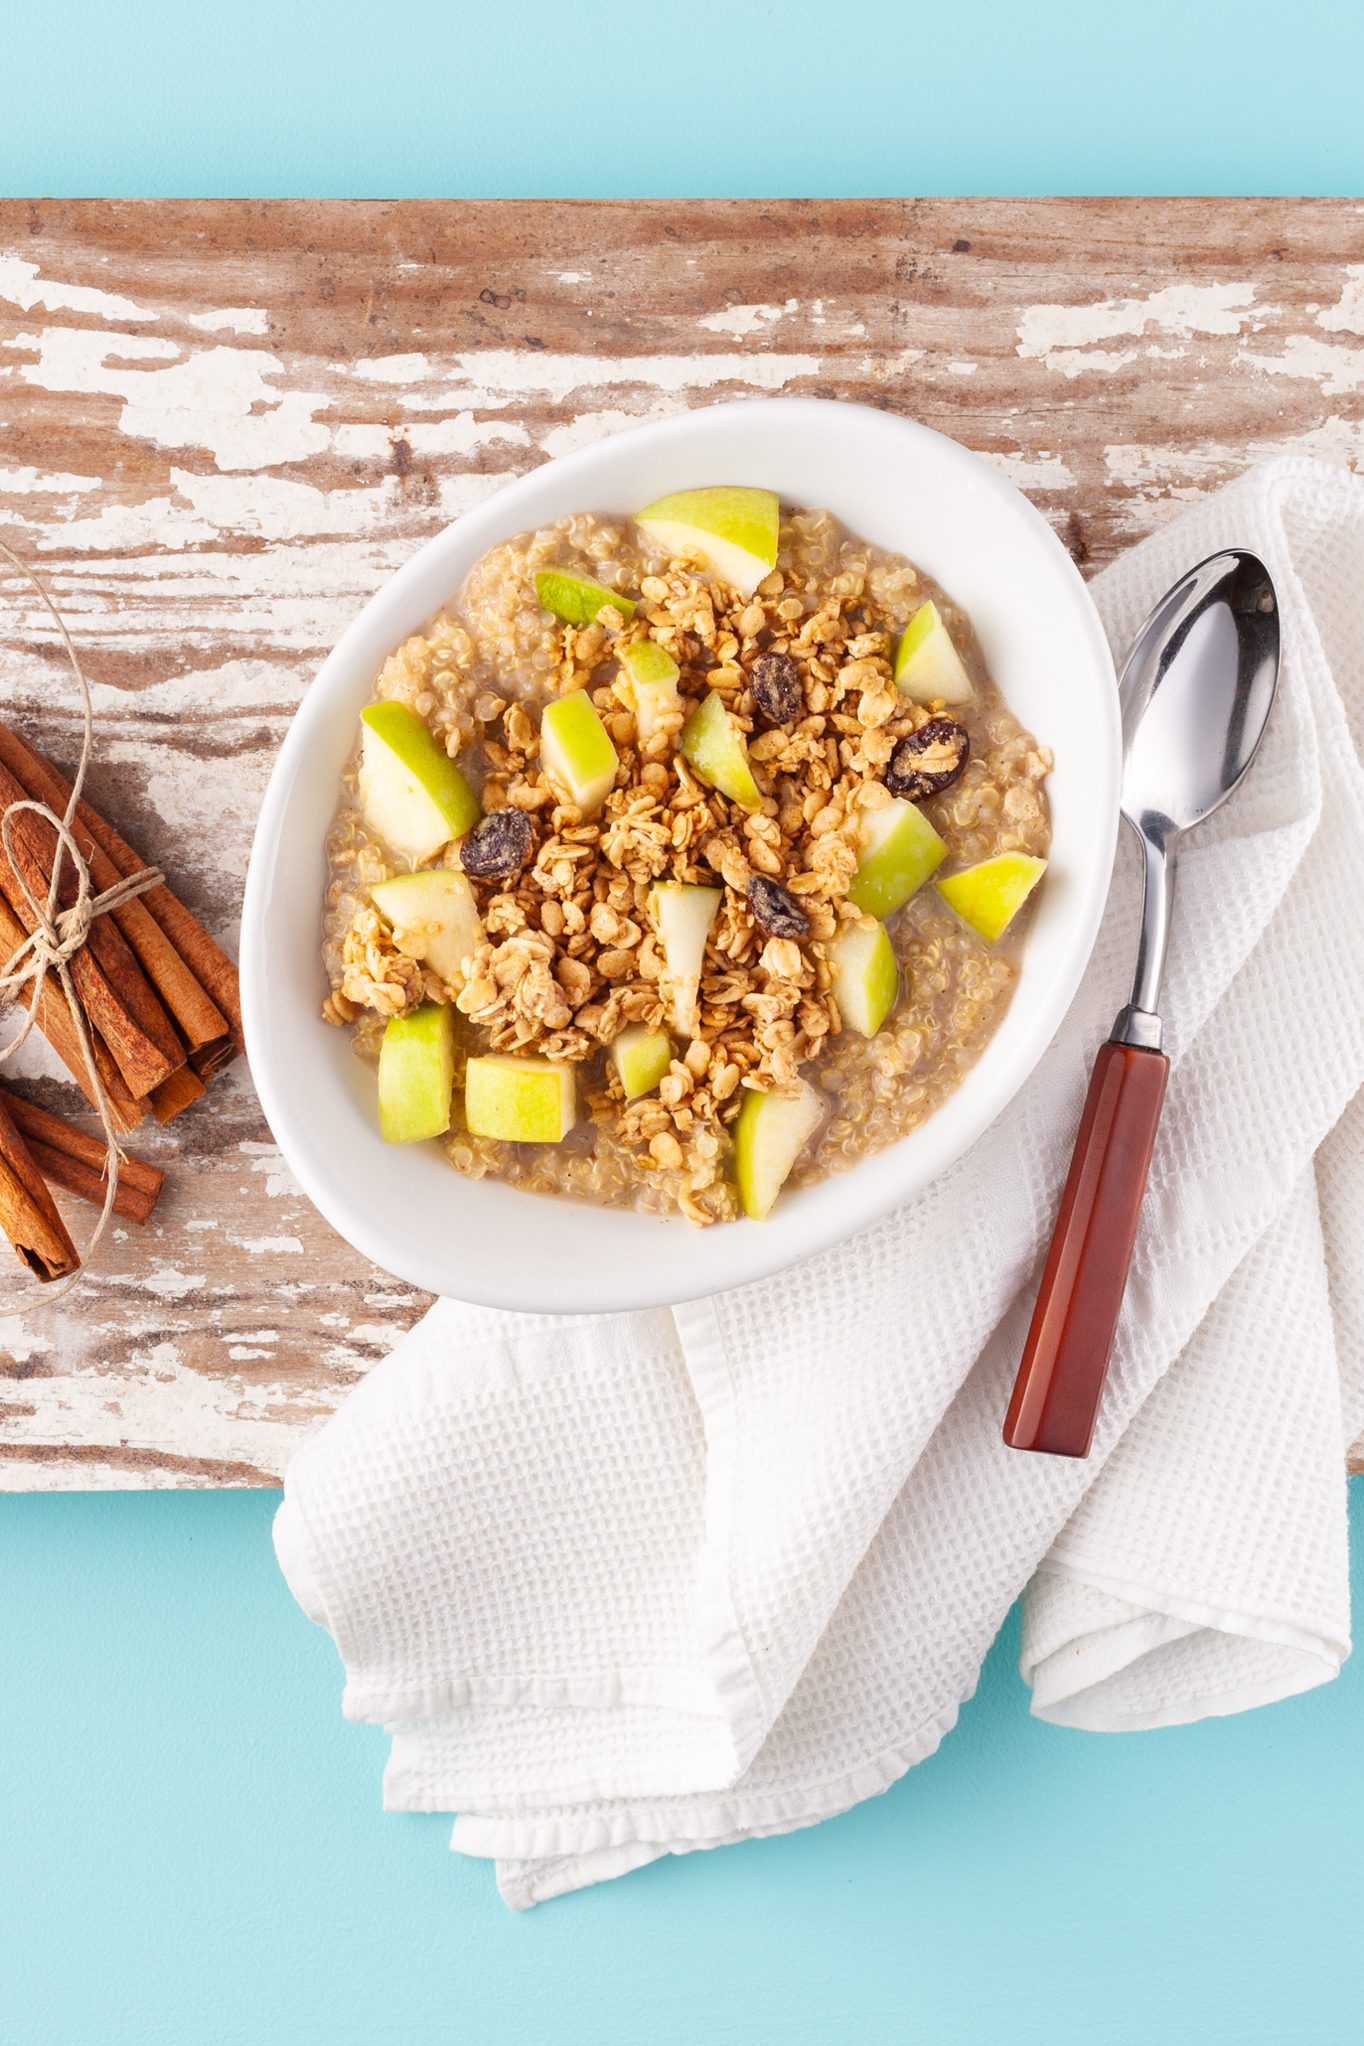 Apple Crumble Quinoa Porridge